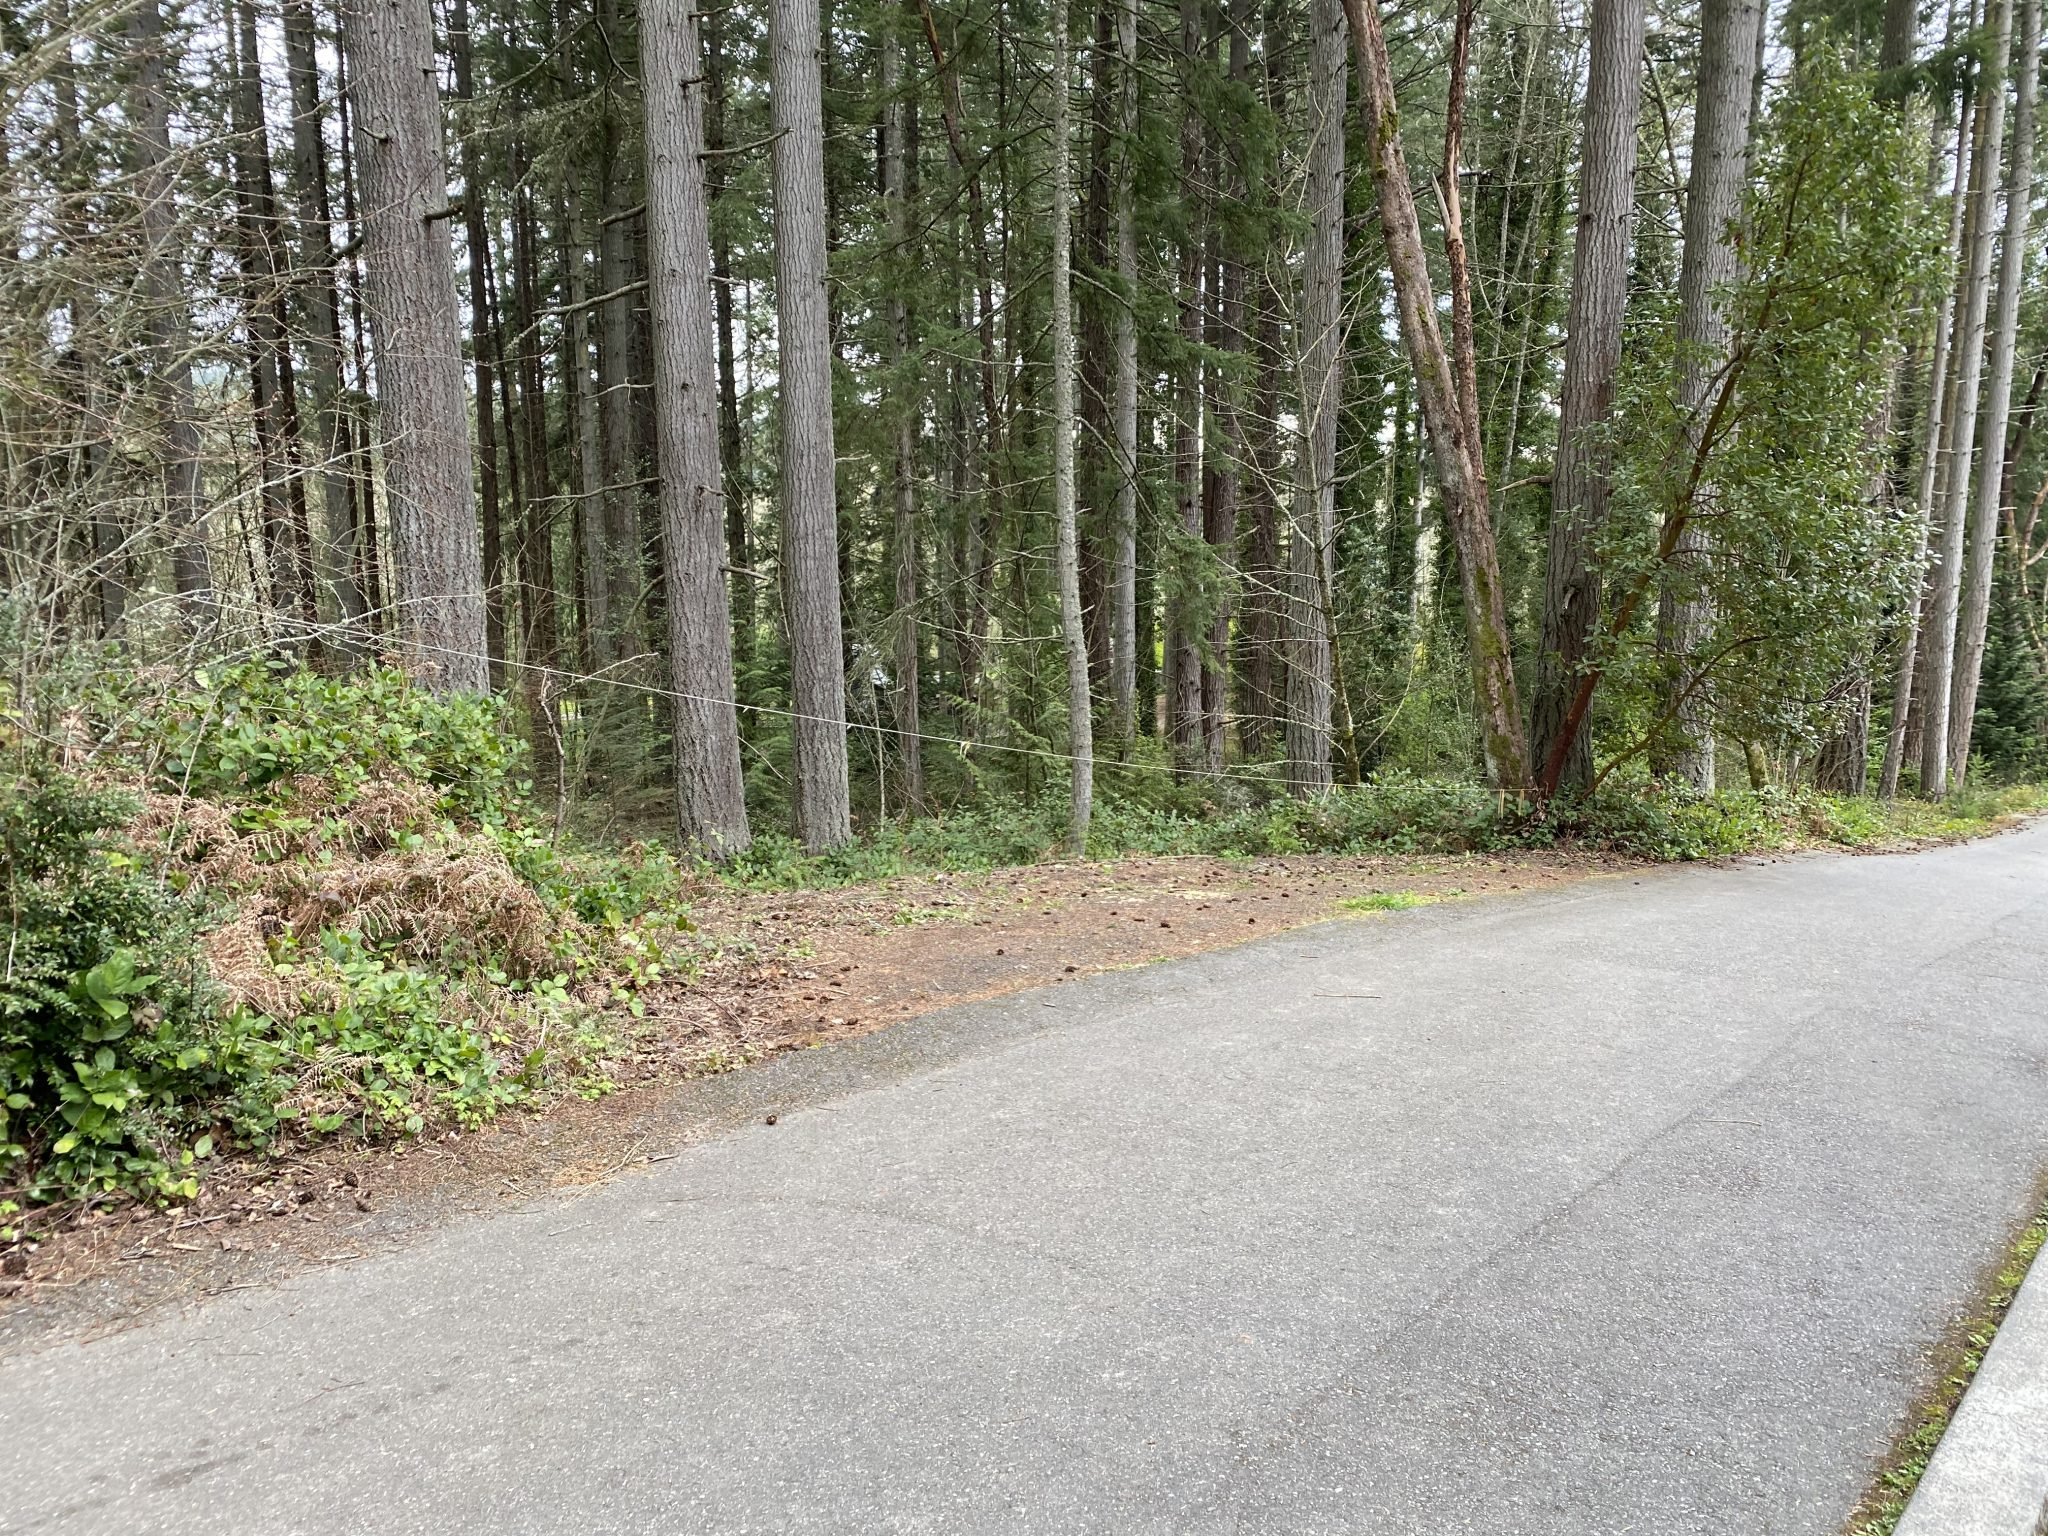 Peters Trail Parking on Listening Lane, Bainbridge Island